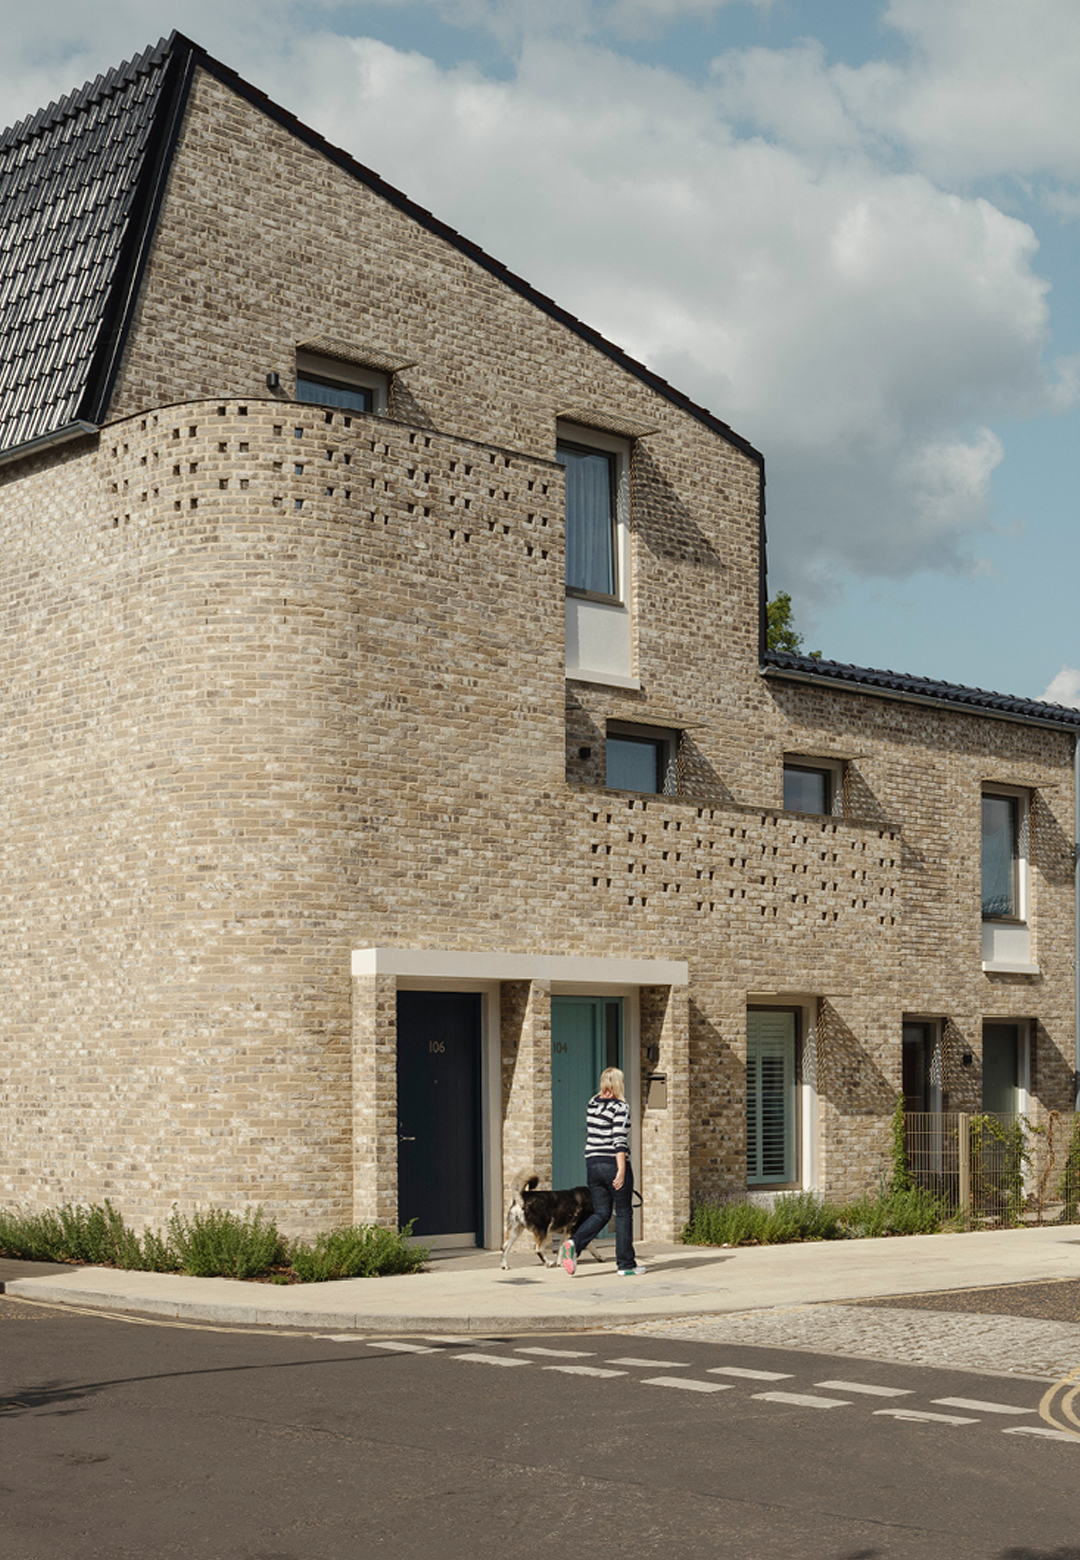 Goldsmith Street housing scheme by Mikhail Riches with Cathy Hawley wins RIBA Stirling Prize 2019| Goldsmith Street Housing | Mikhail Riches, Cathy Hawley | RIBA Stirling Prize 2019| STIRworld